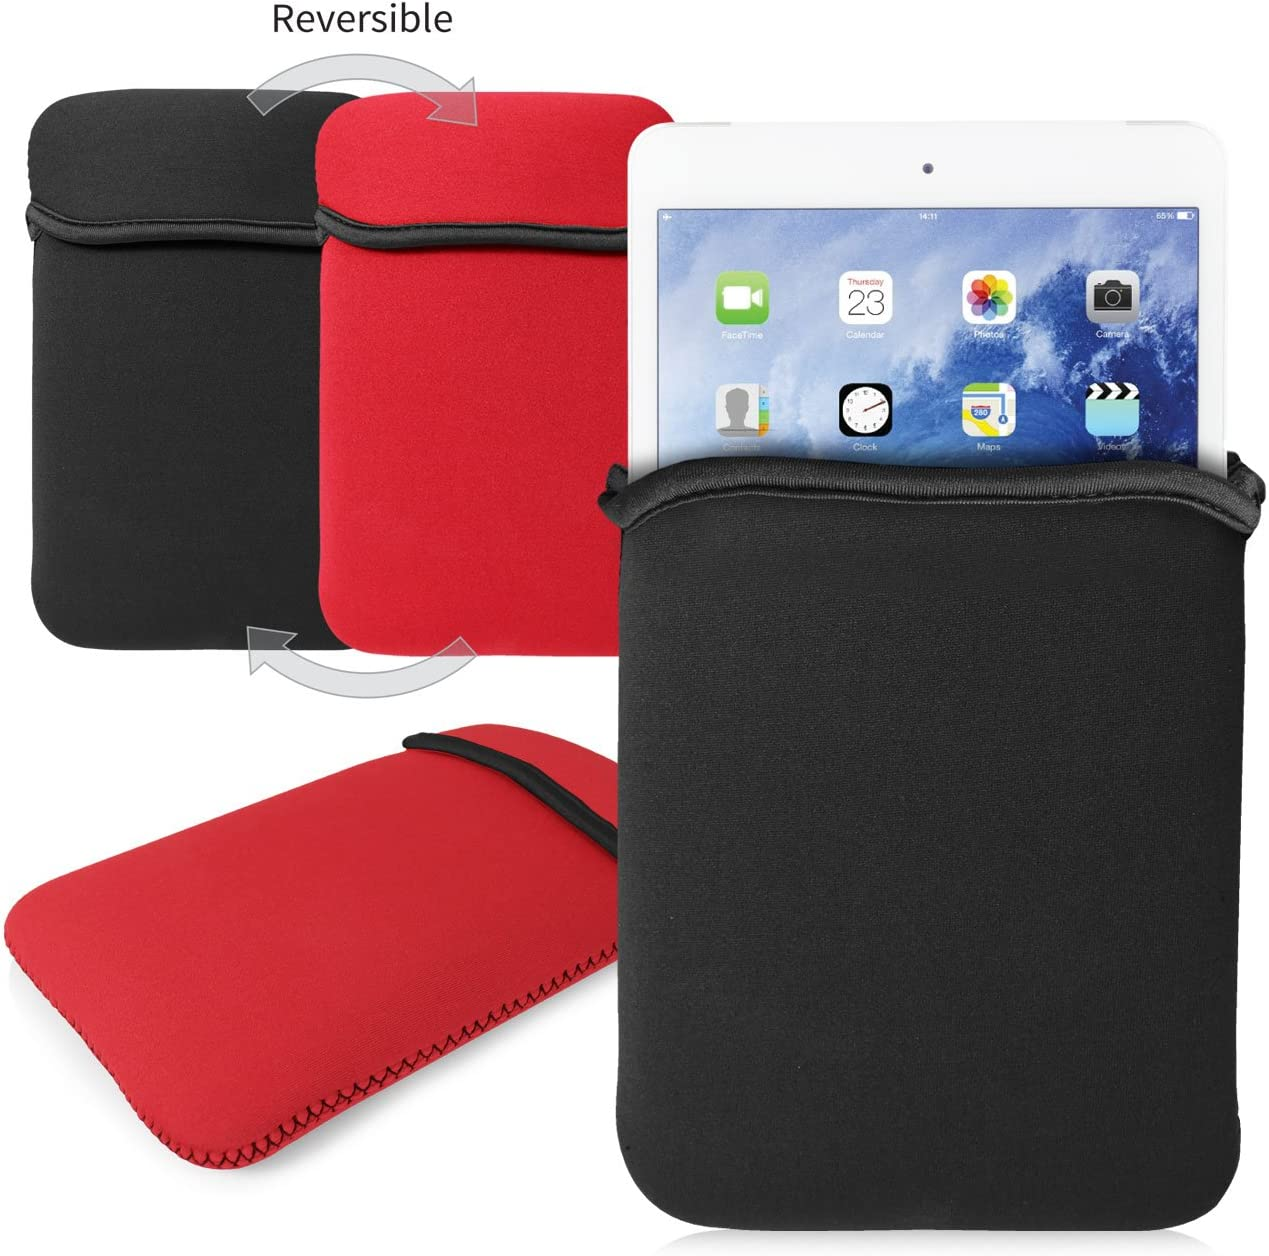 G-HUB - Reversible Neoprene Sleeve for iPAD MINI & iPAD MINI 2 - Cover is BLACK on the outside (or RED when reversed) - Designed by G-Hub specifically for use with the Apple iPad Mini and iPad Mini 2